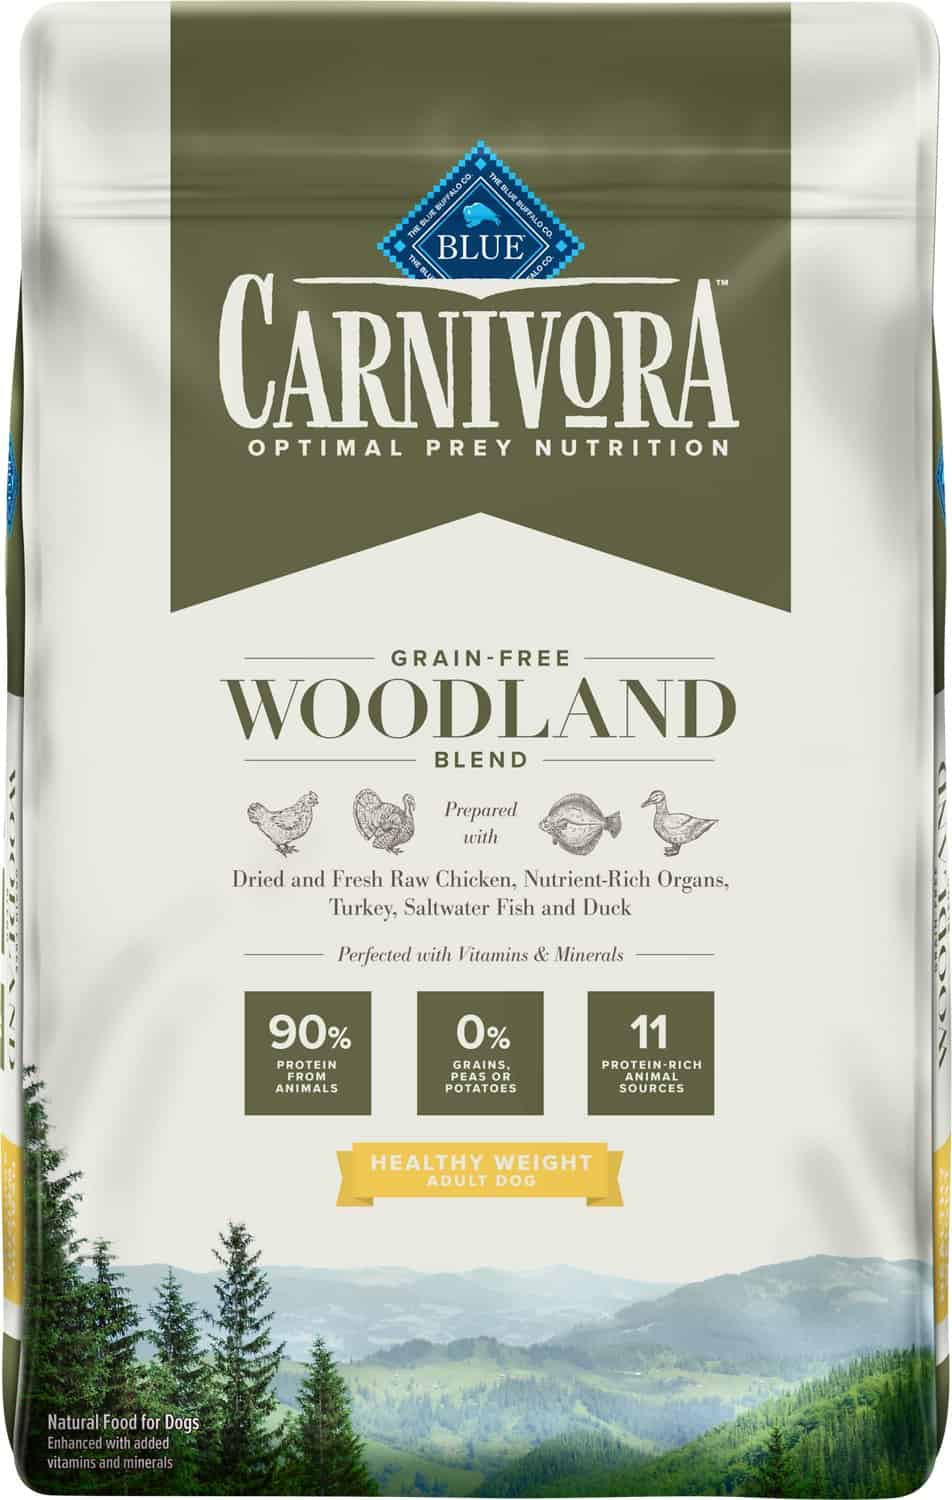 Blue Buffalo Carnivora Review 2021: The Pea & Potato Free Dog Food Line 16